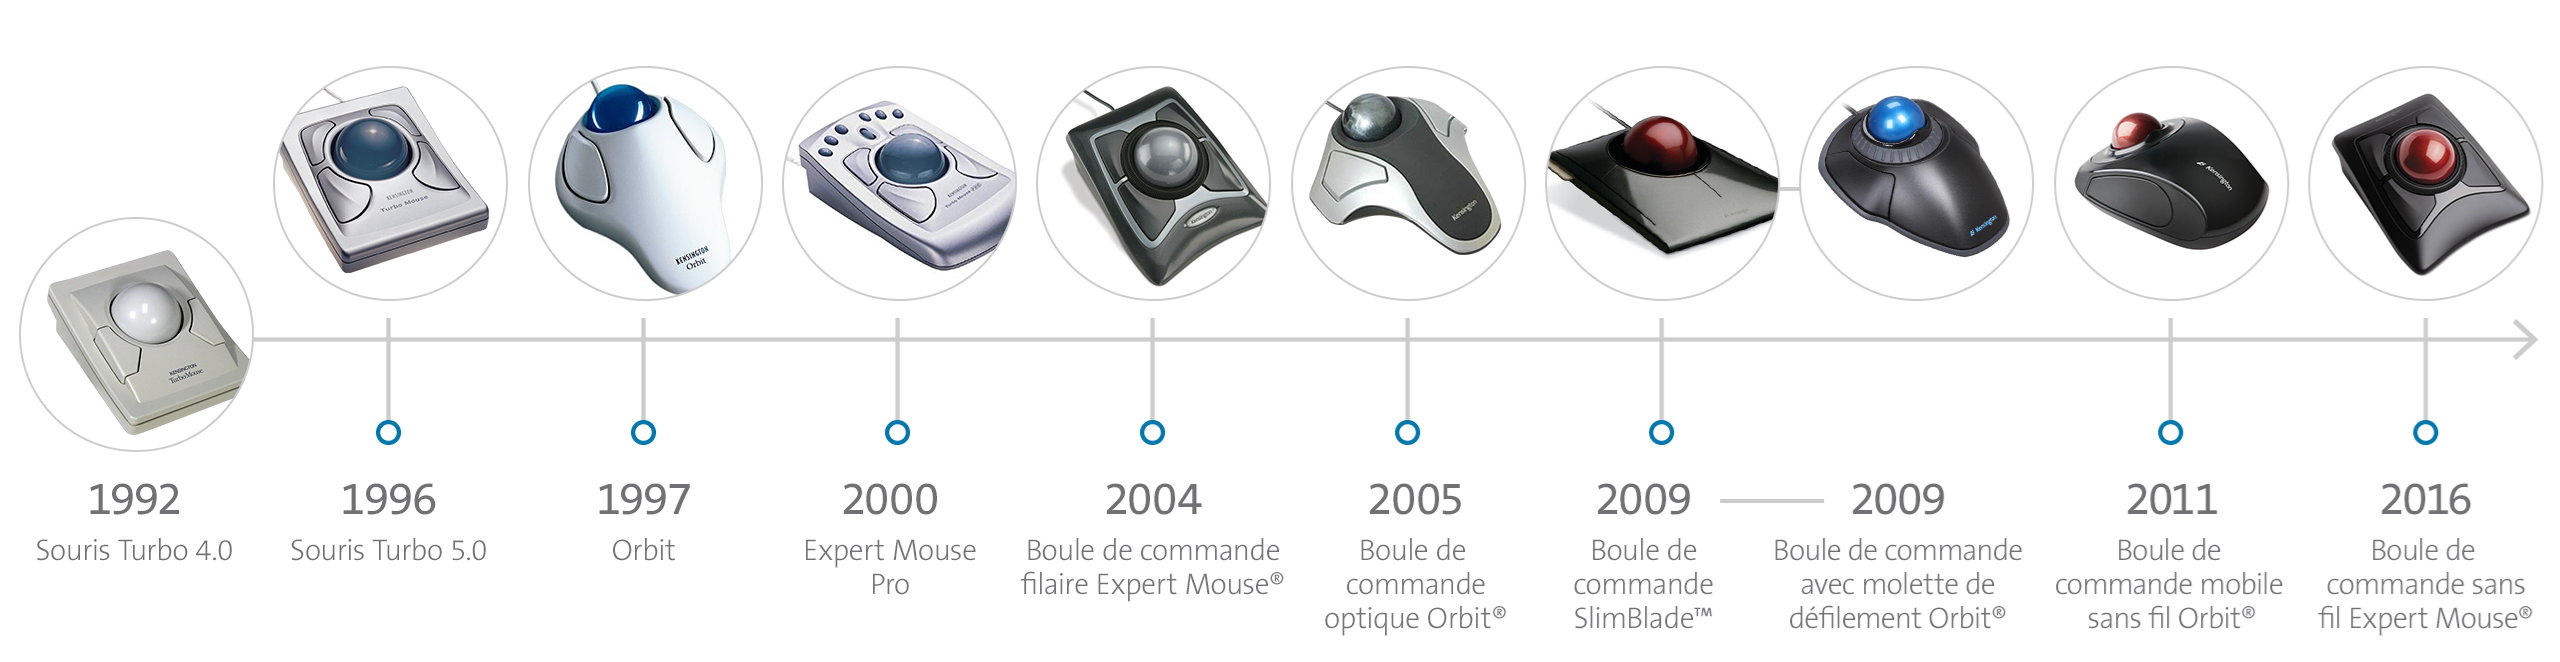 timeline_trackball_FrenchCanadian.png